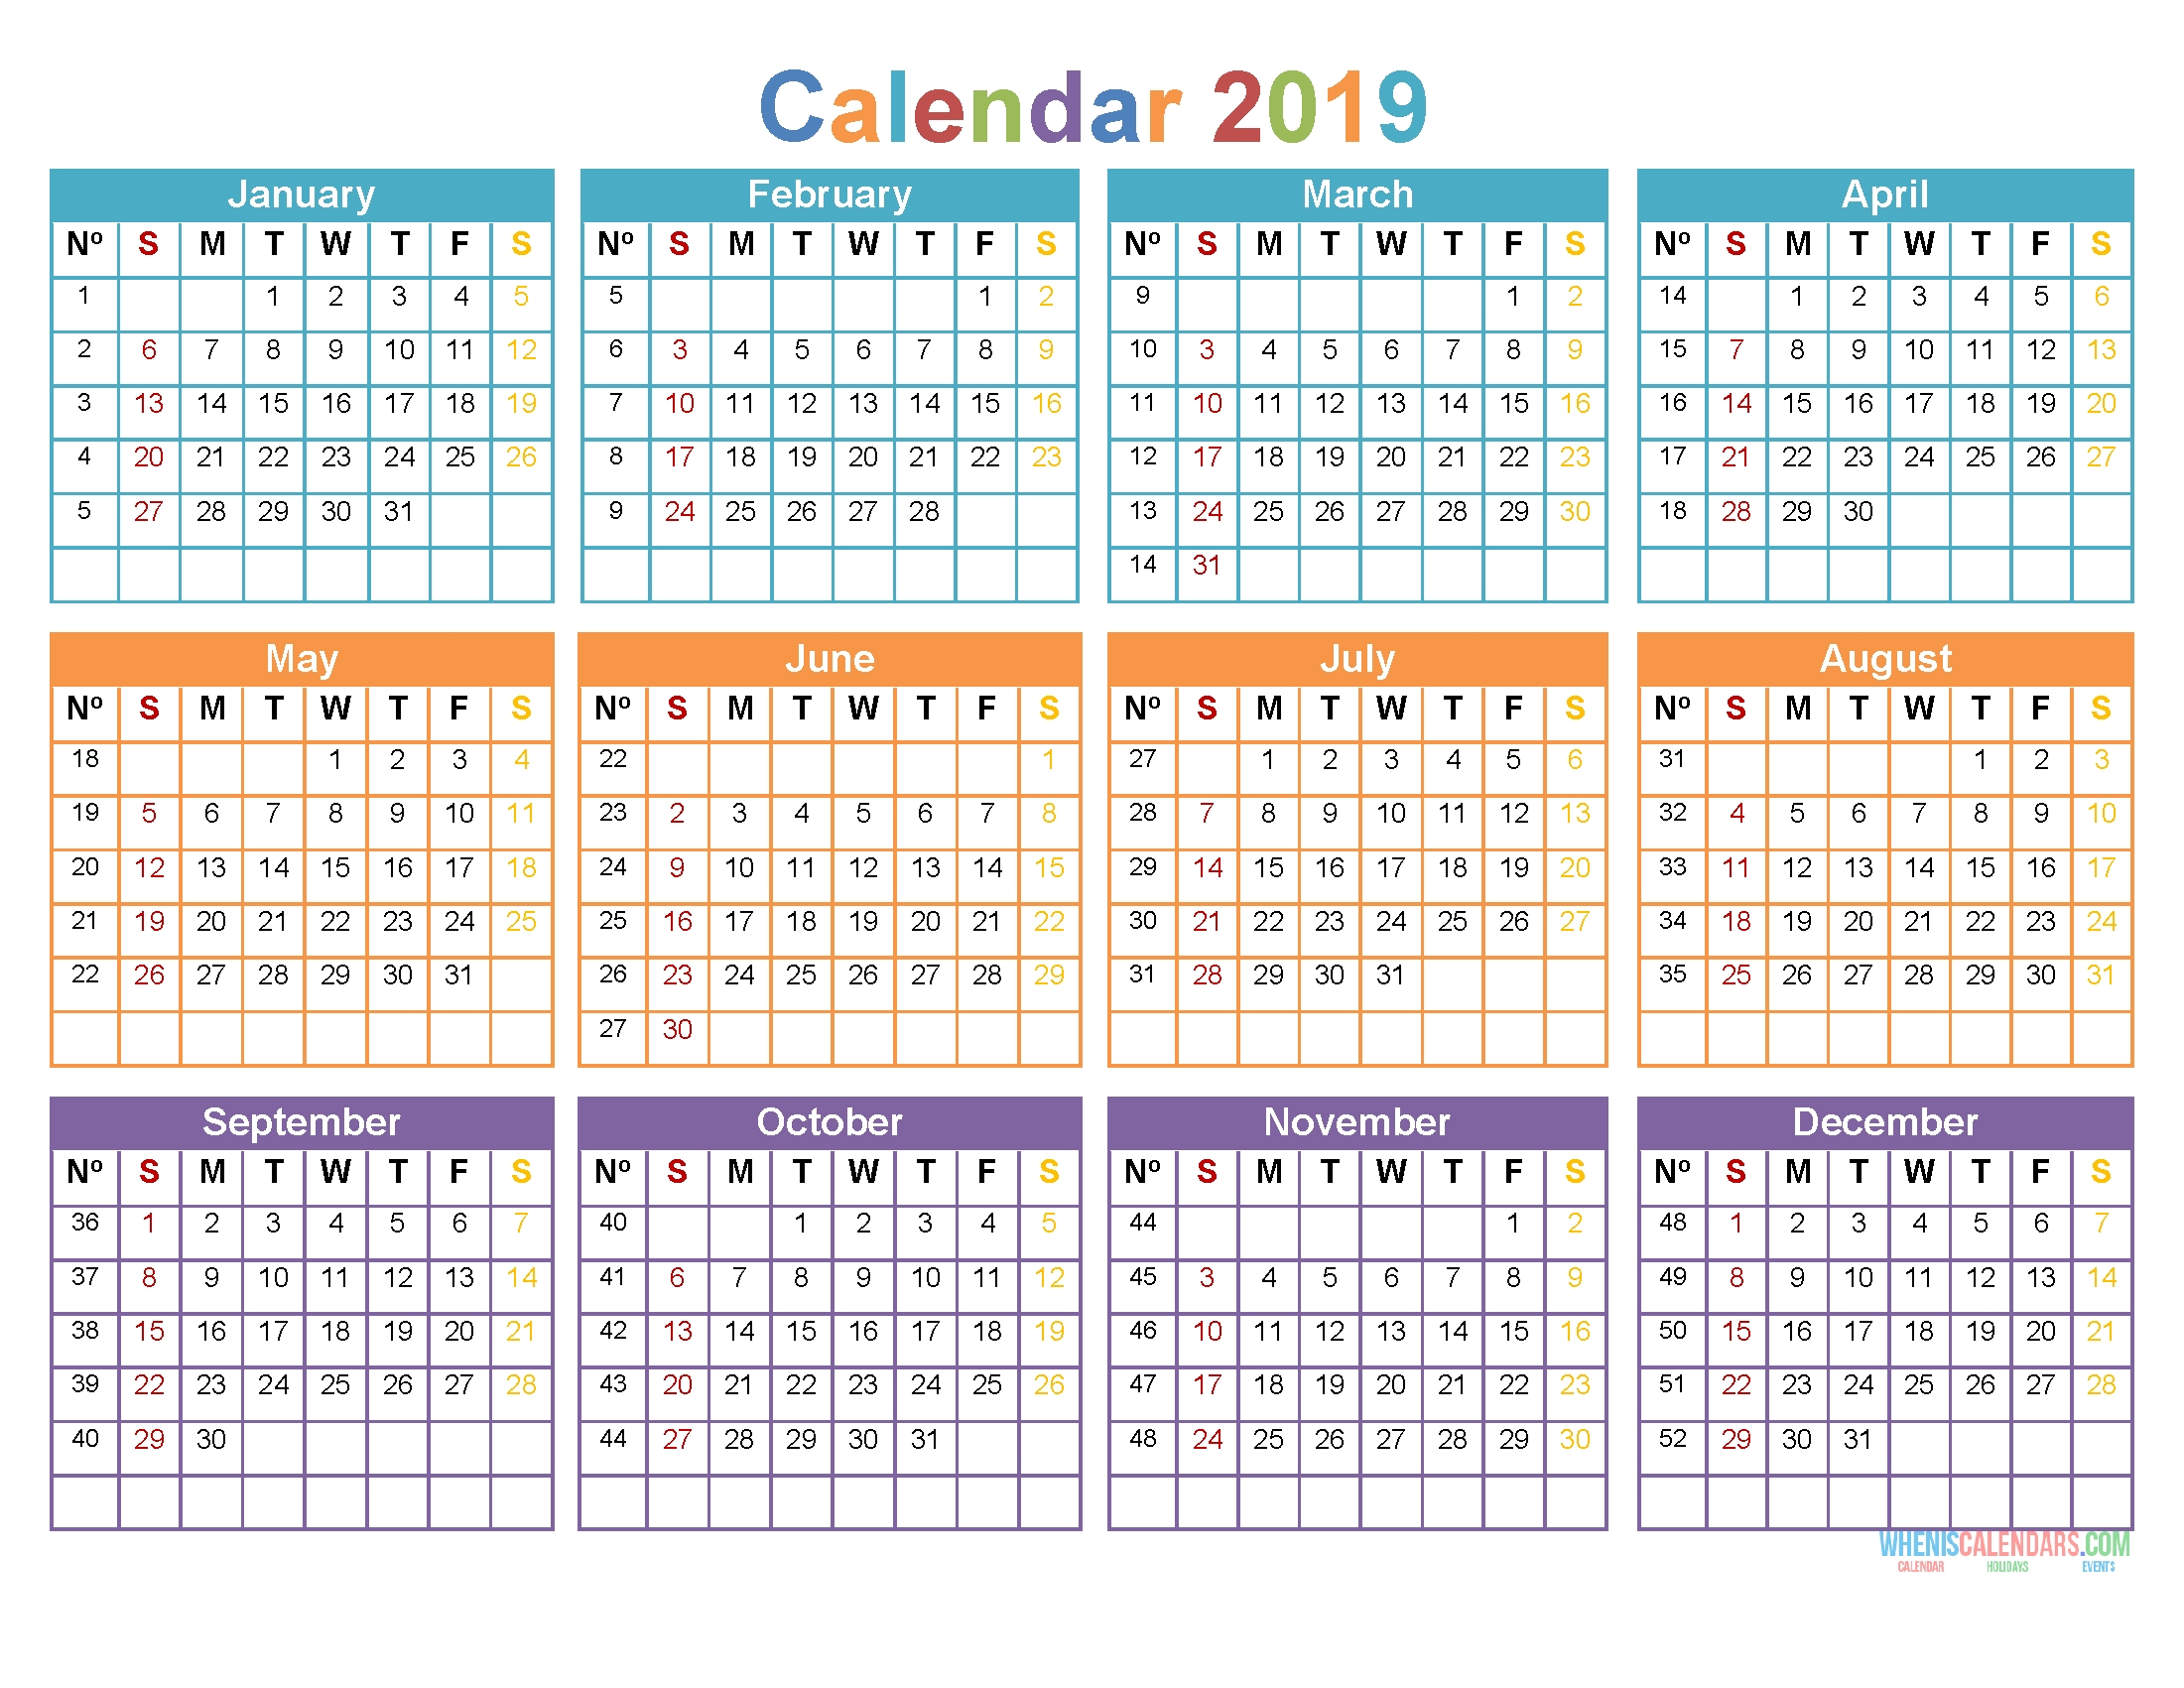 Printable Yearly Calendar 2019 12 Month On 1 Page, Sunday